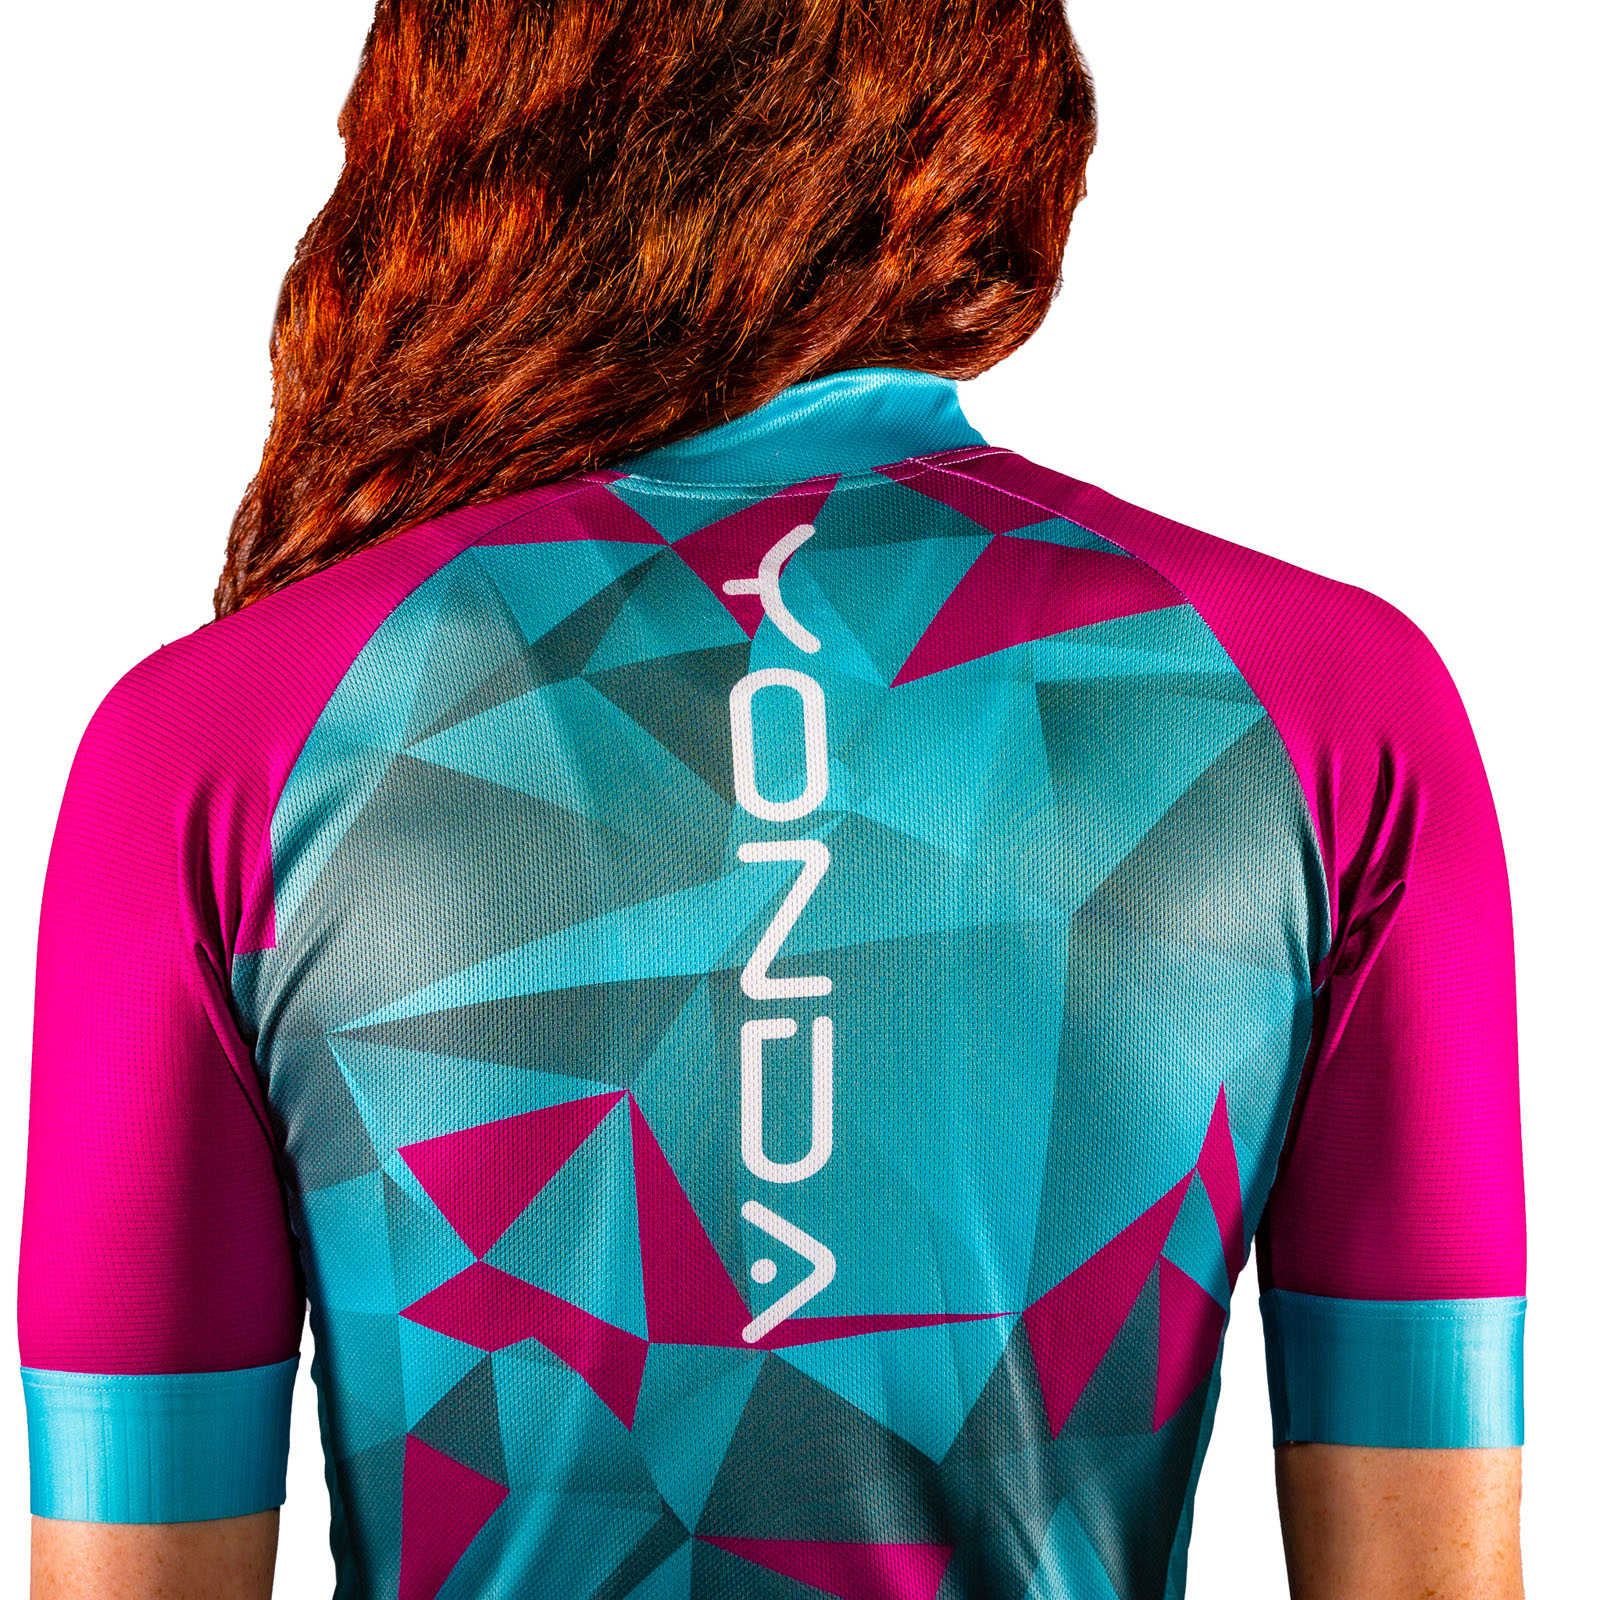 Astratto Blu Cycle Race Jersey - Women's